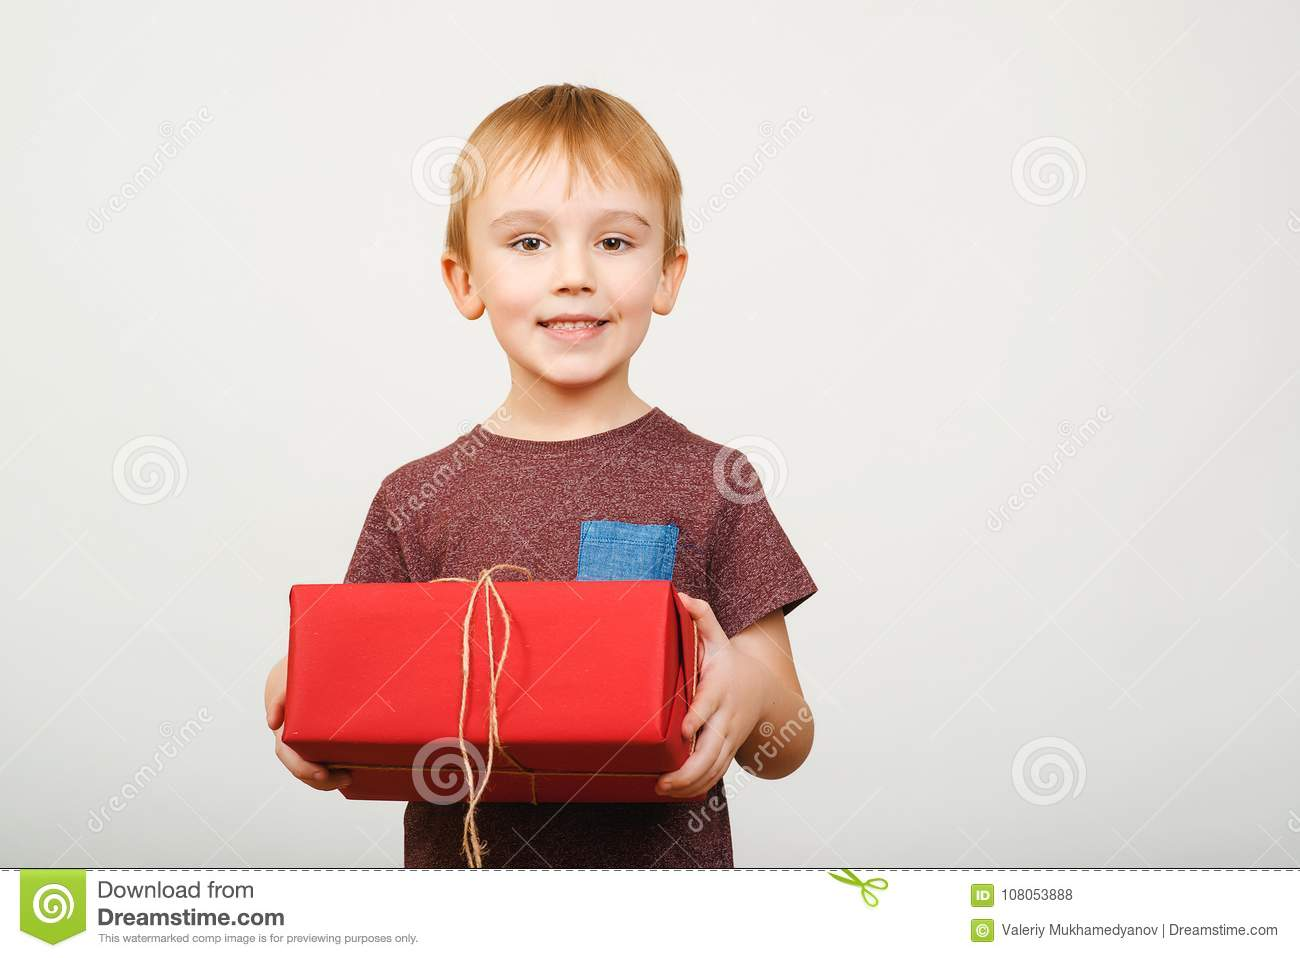 Happy cute little kid holding red gift box isolated over white background.